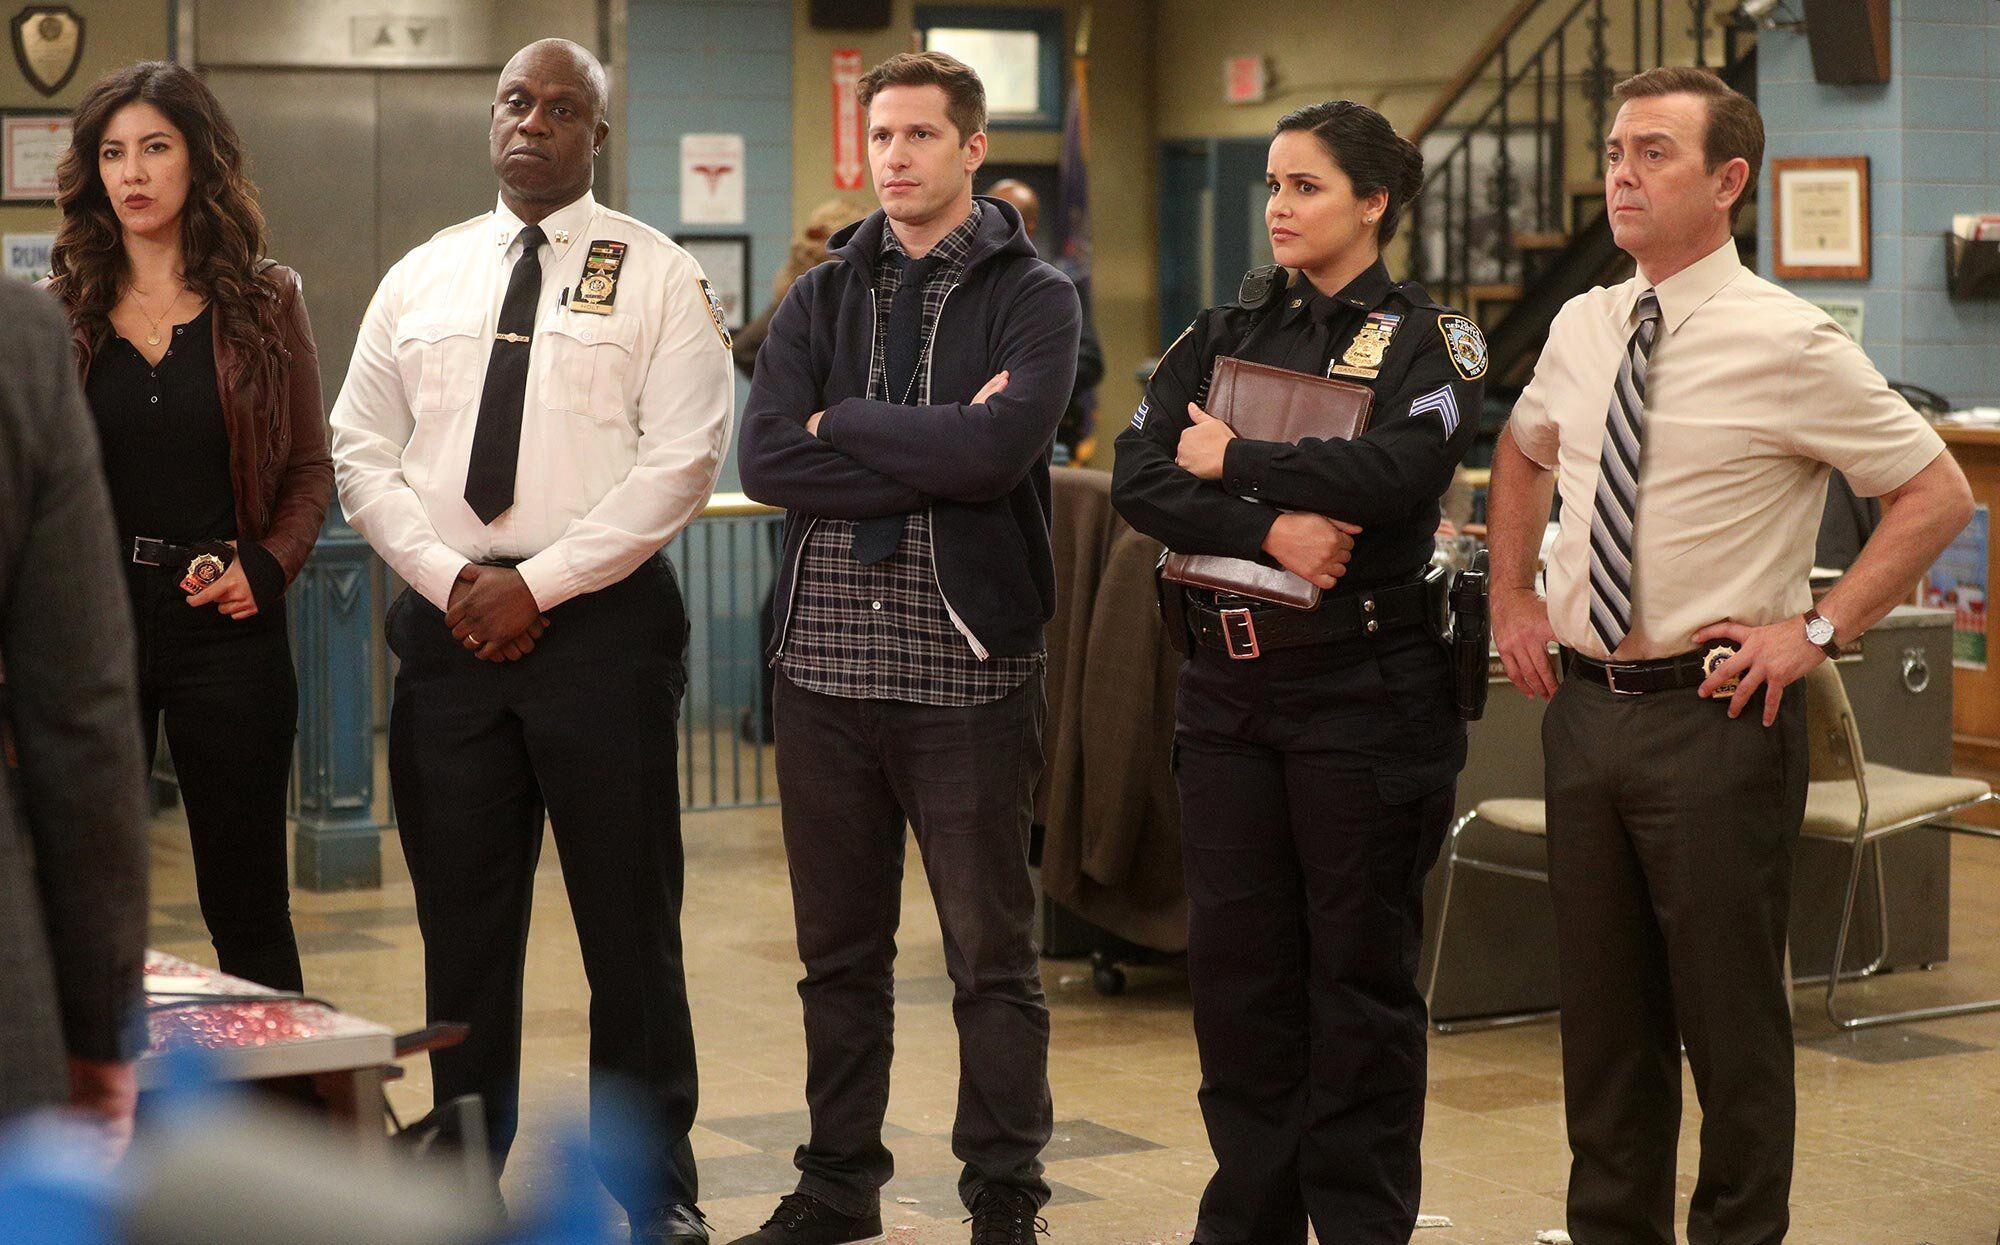 Brooklyn Nine-Nine To End After Season 8